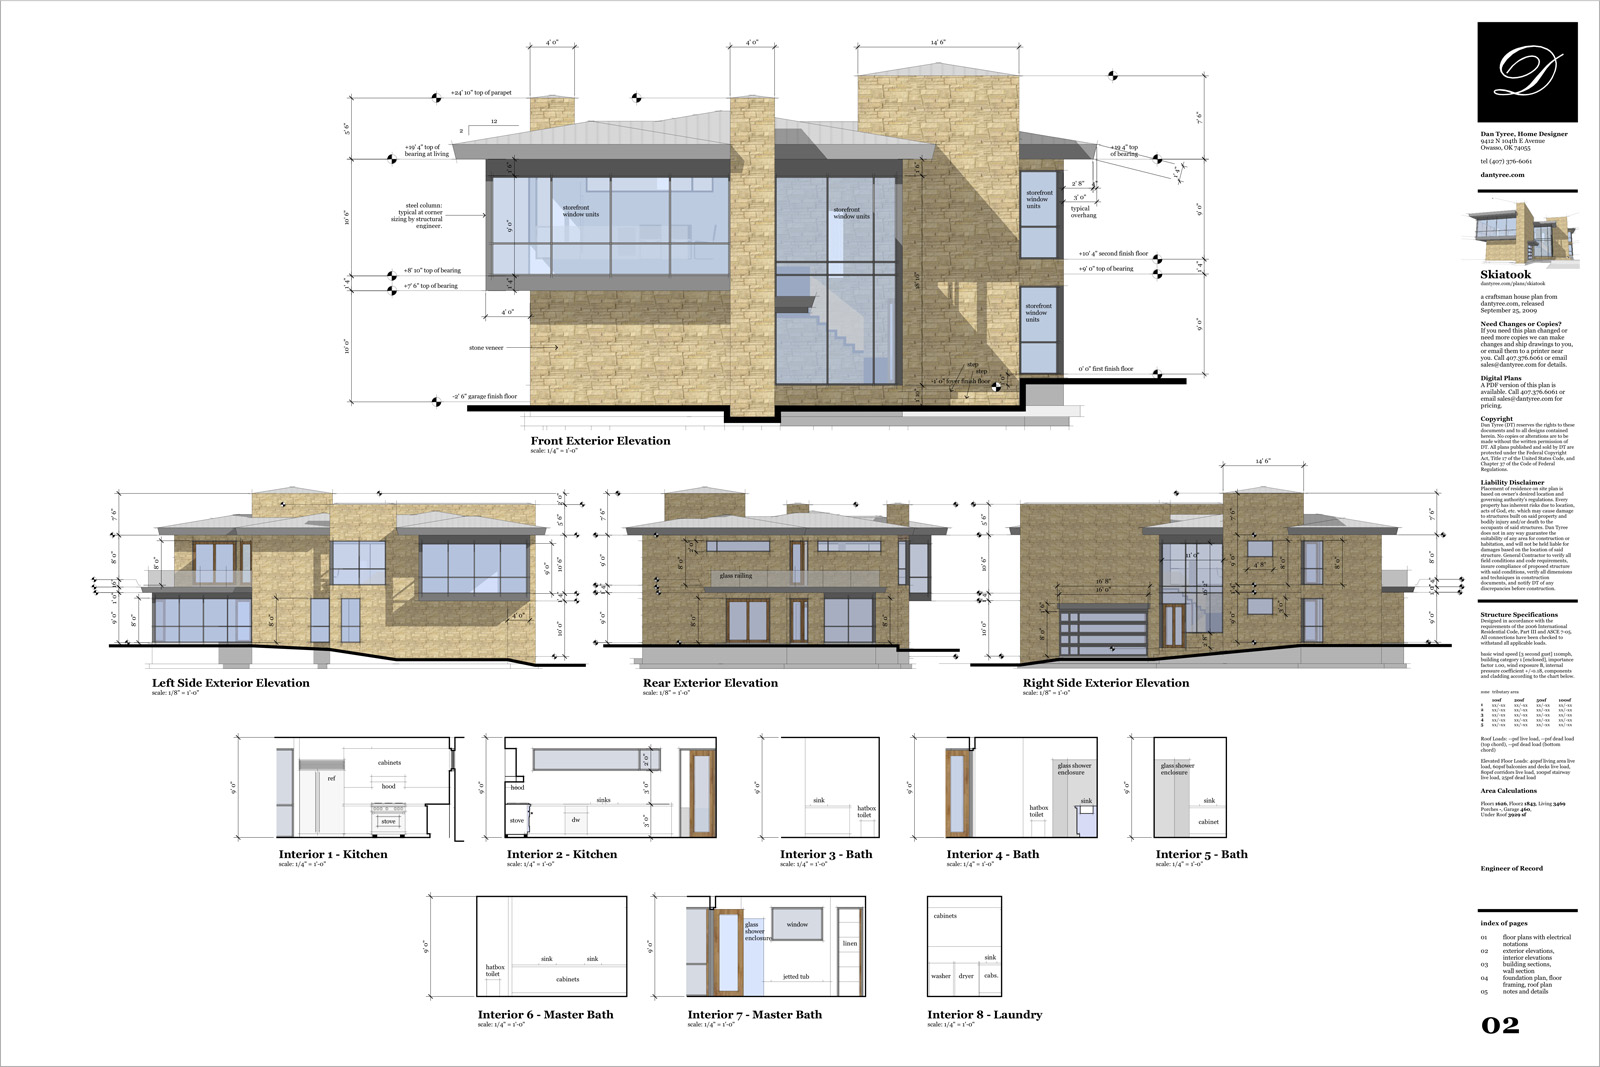 Elevation Plan Sketchup : Retired sketchup pro case study dan tyree